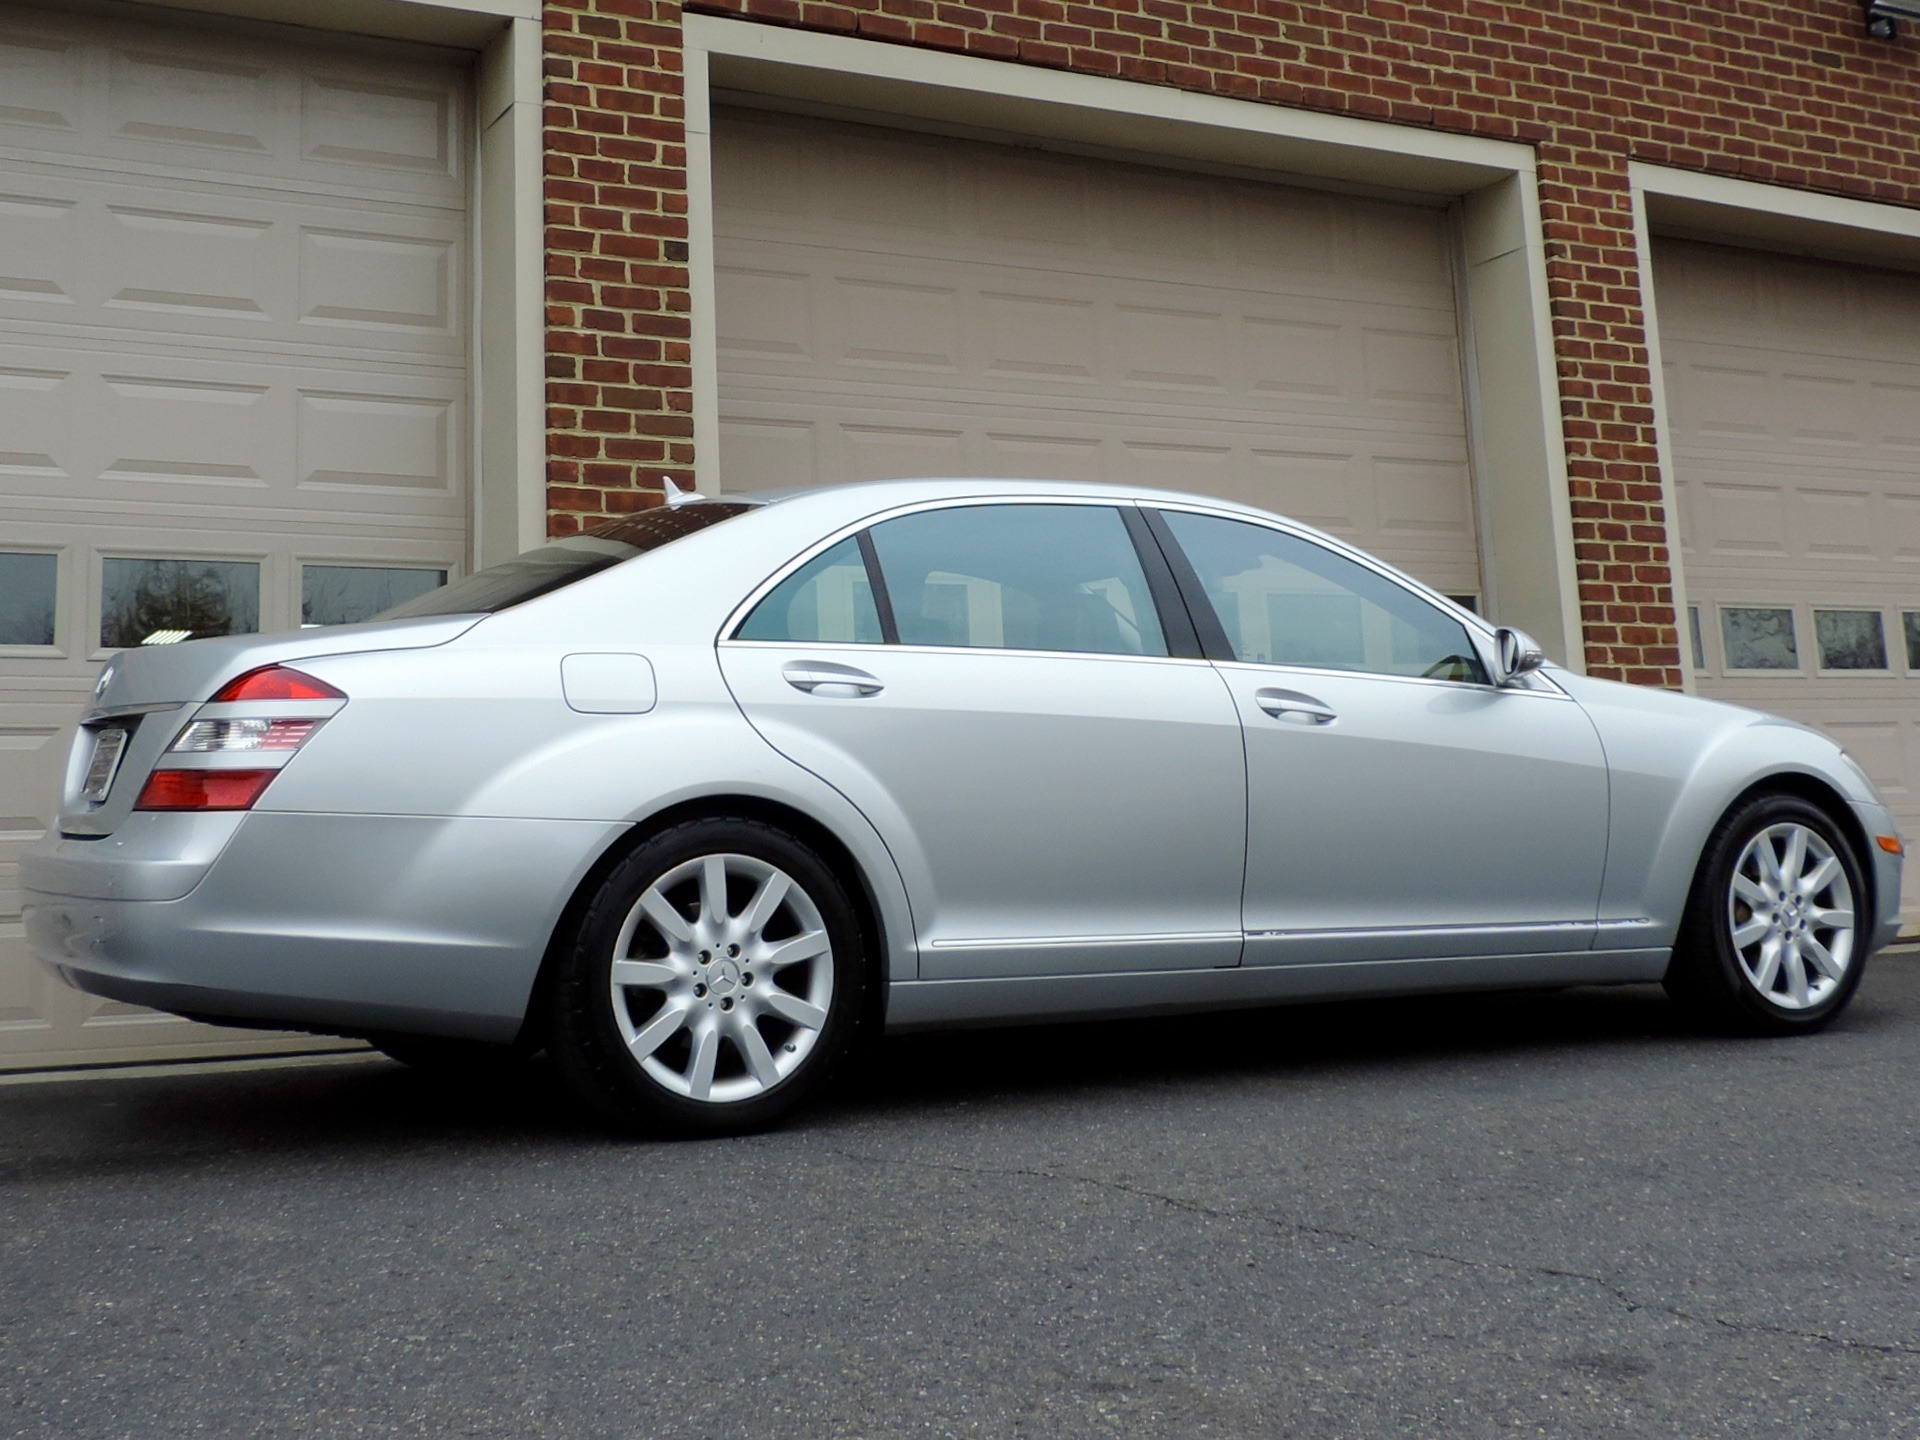 2007 mercedes benz s class s 550 stock 133674 for sale for 2007 mercedes benz s class 550